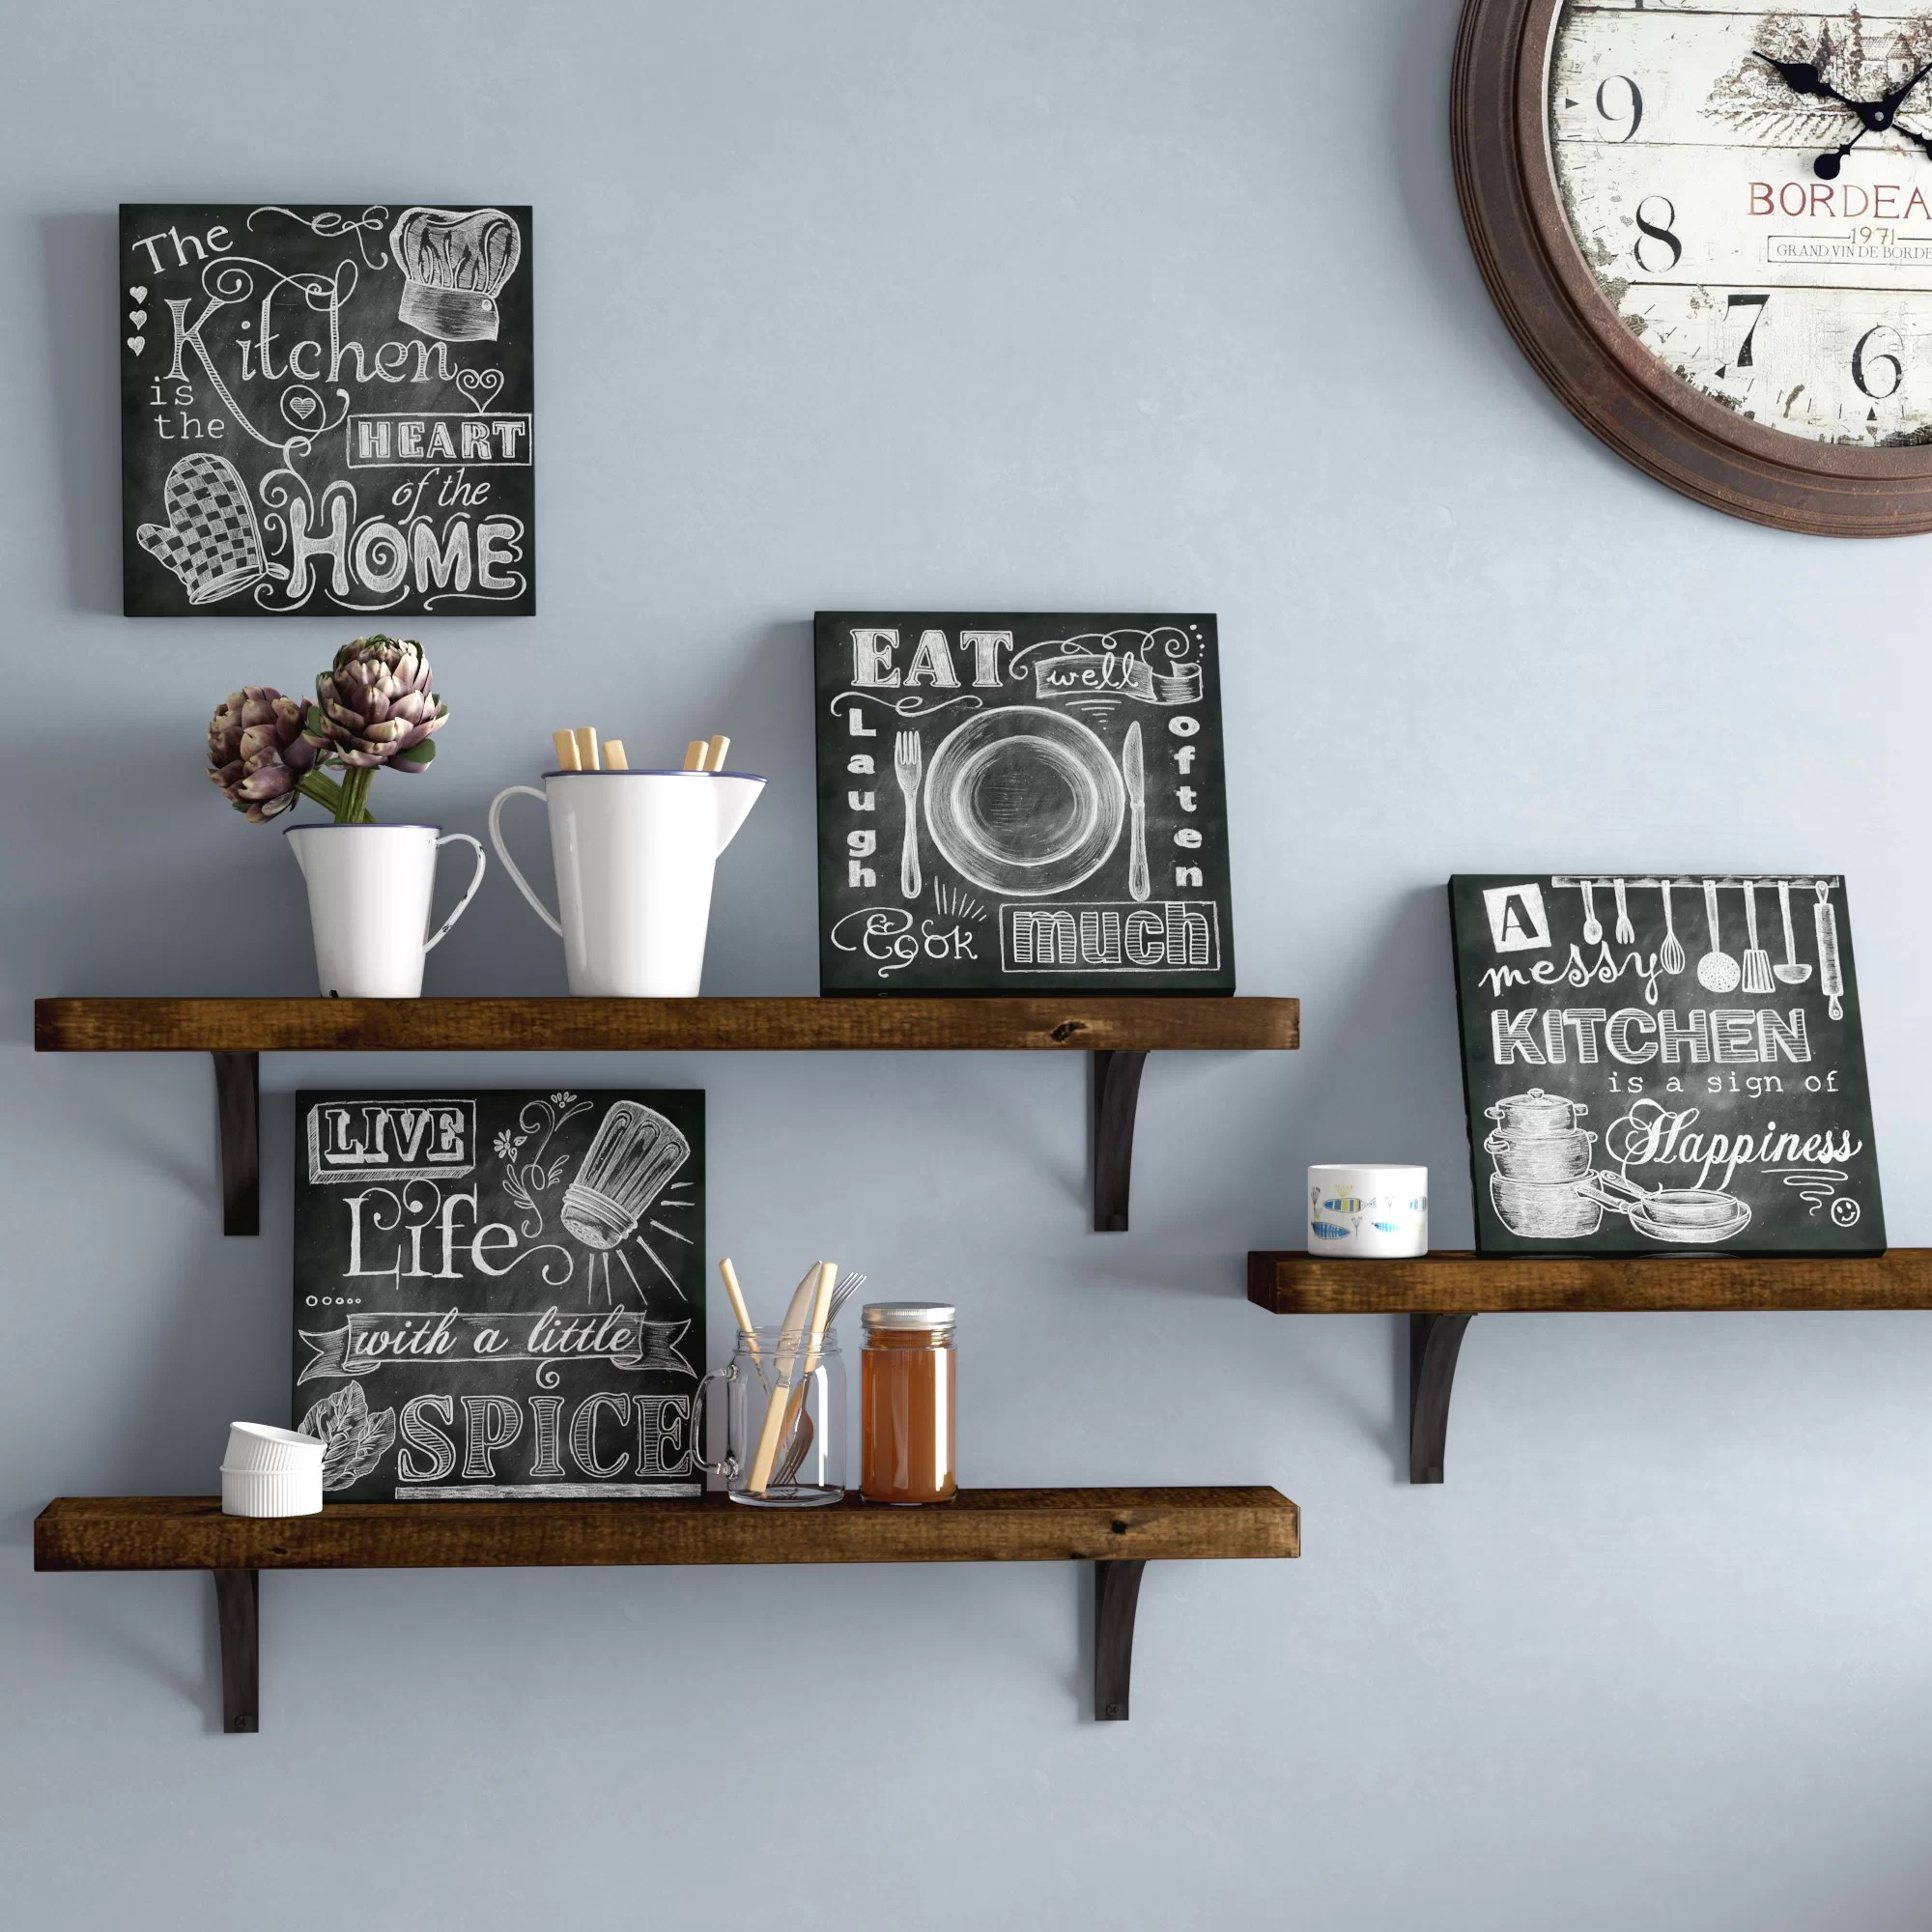 kitchen signs for home depot design darby co beautiful fun chalkboard messy heart of the spice life and cook much 4 piece framed graphic art print